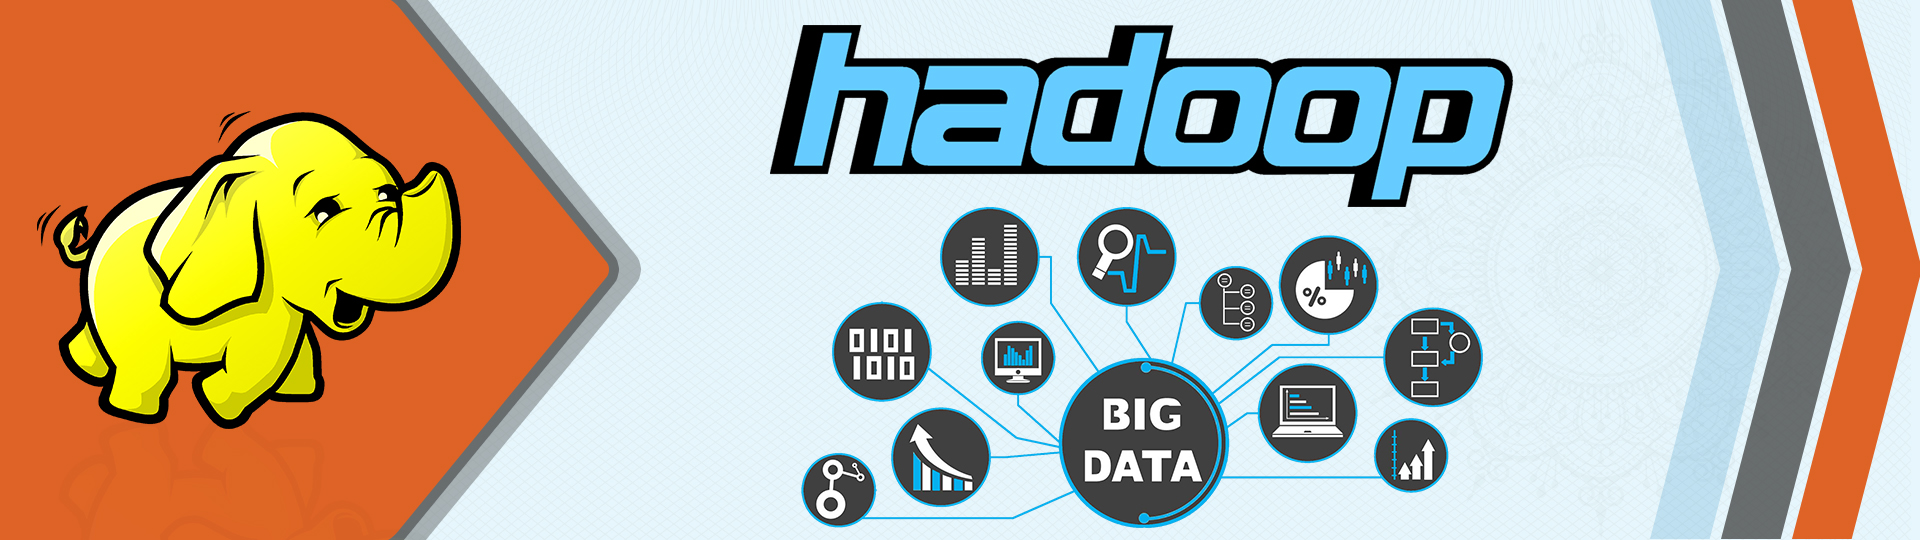 Hadoop Training in Panchkula